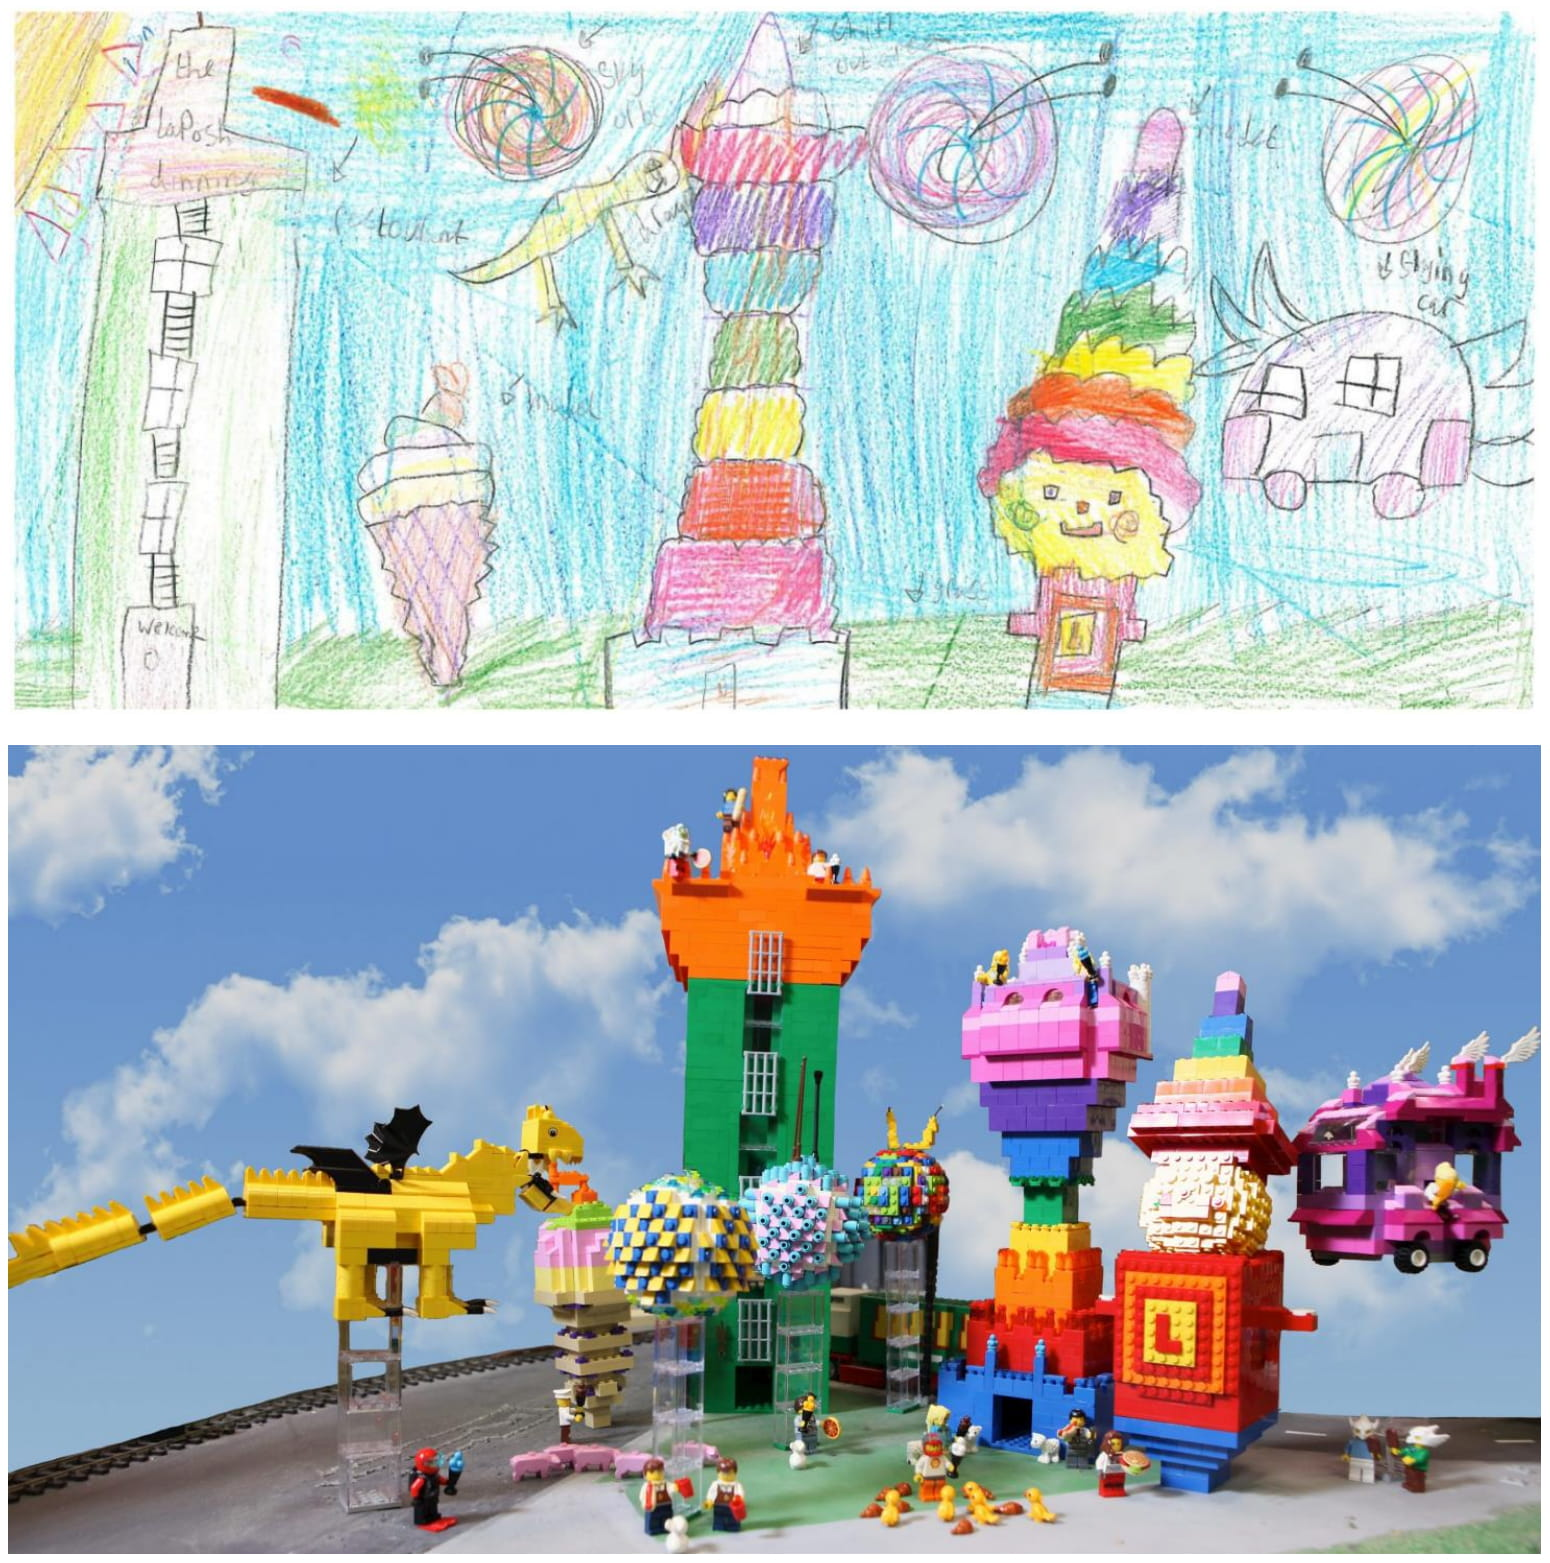 Competition winner Saira Ali's original drawing has been reconstructed in Lego